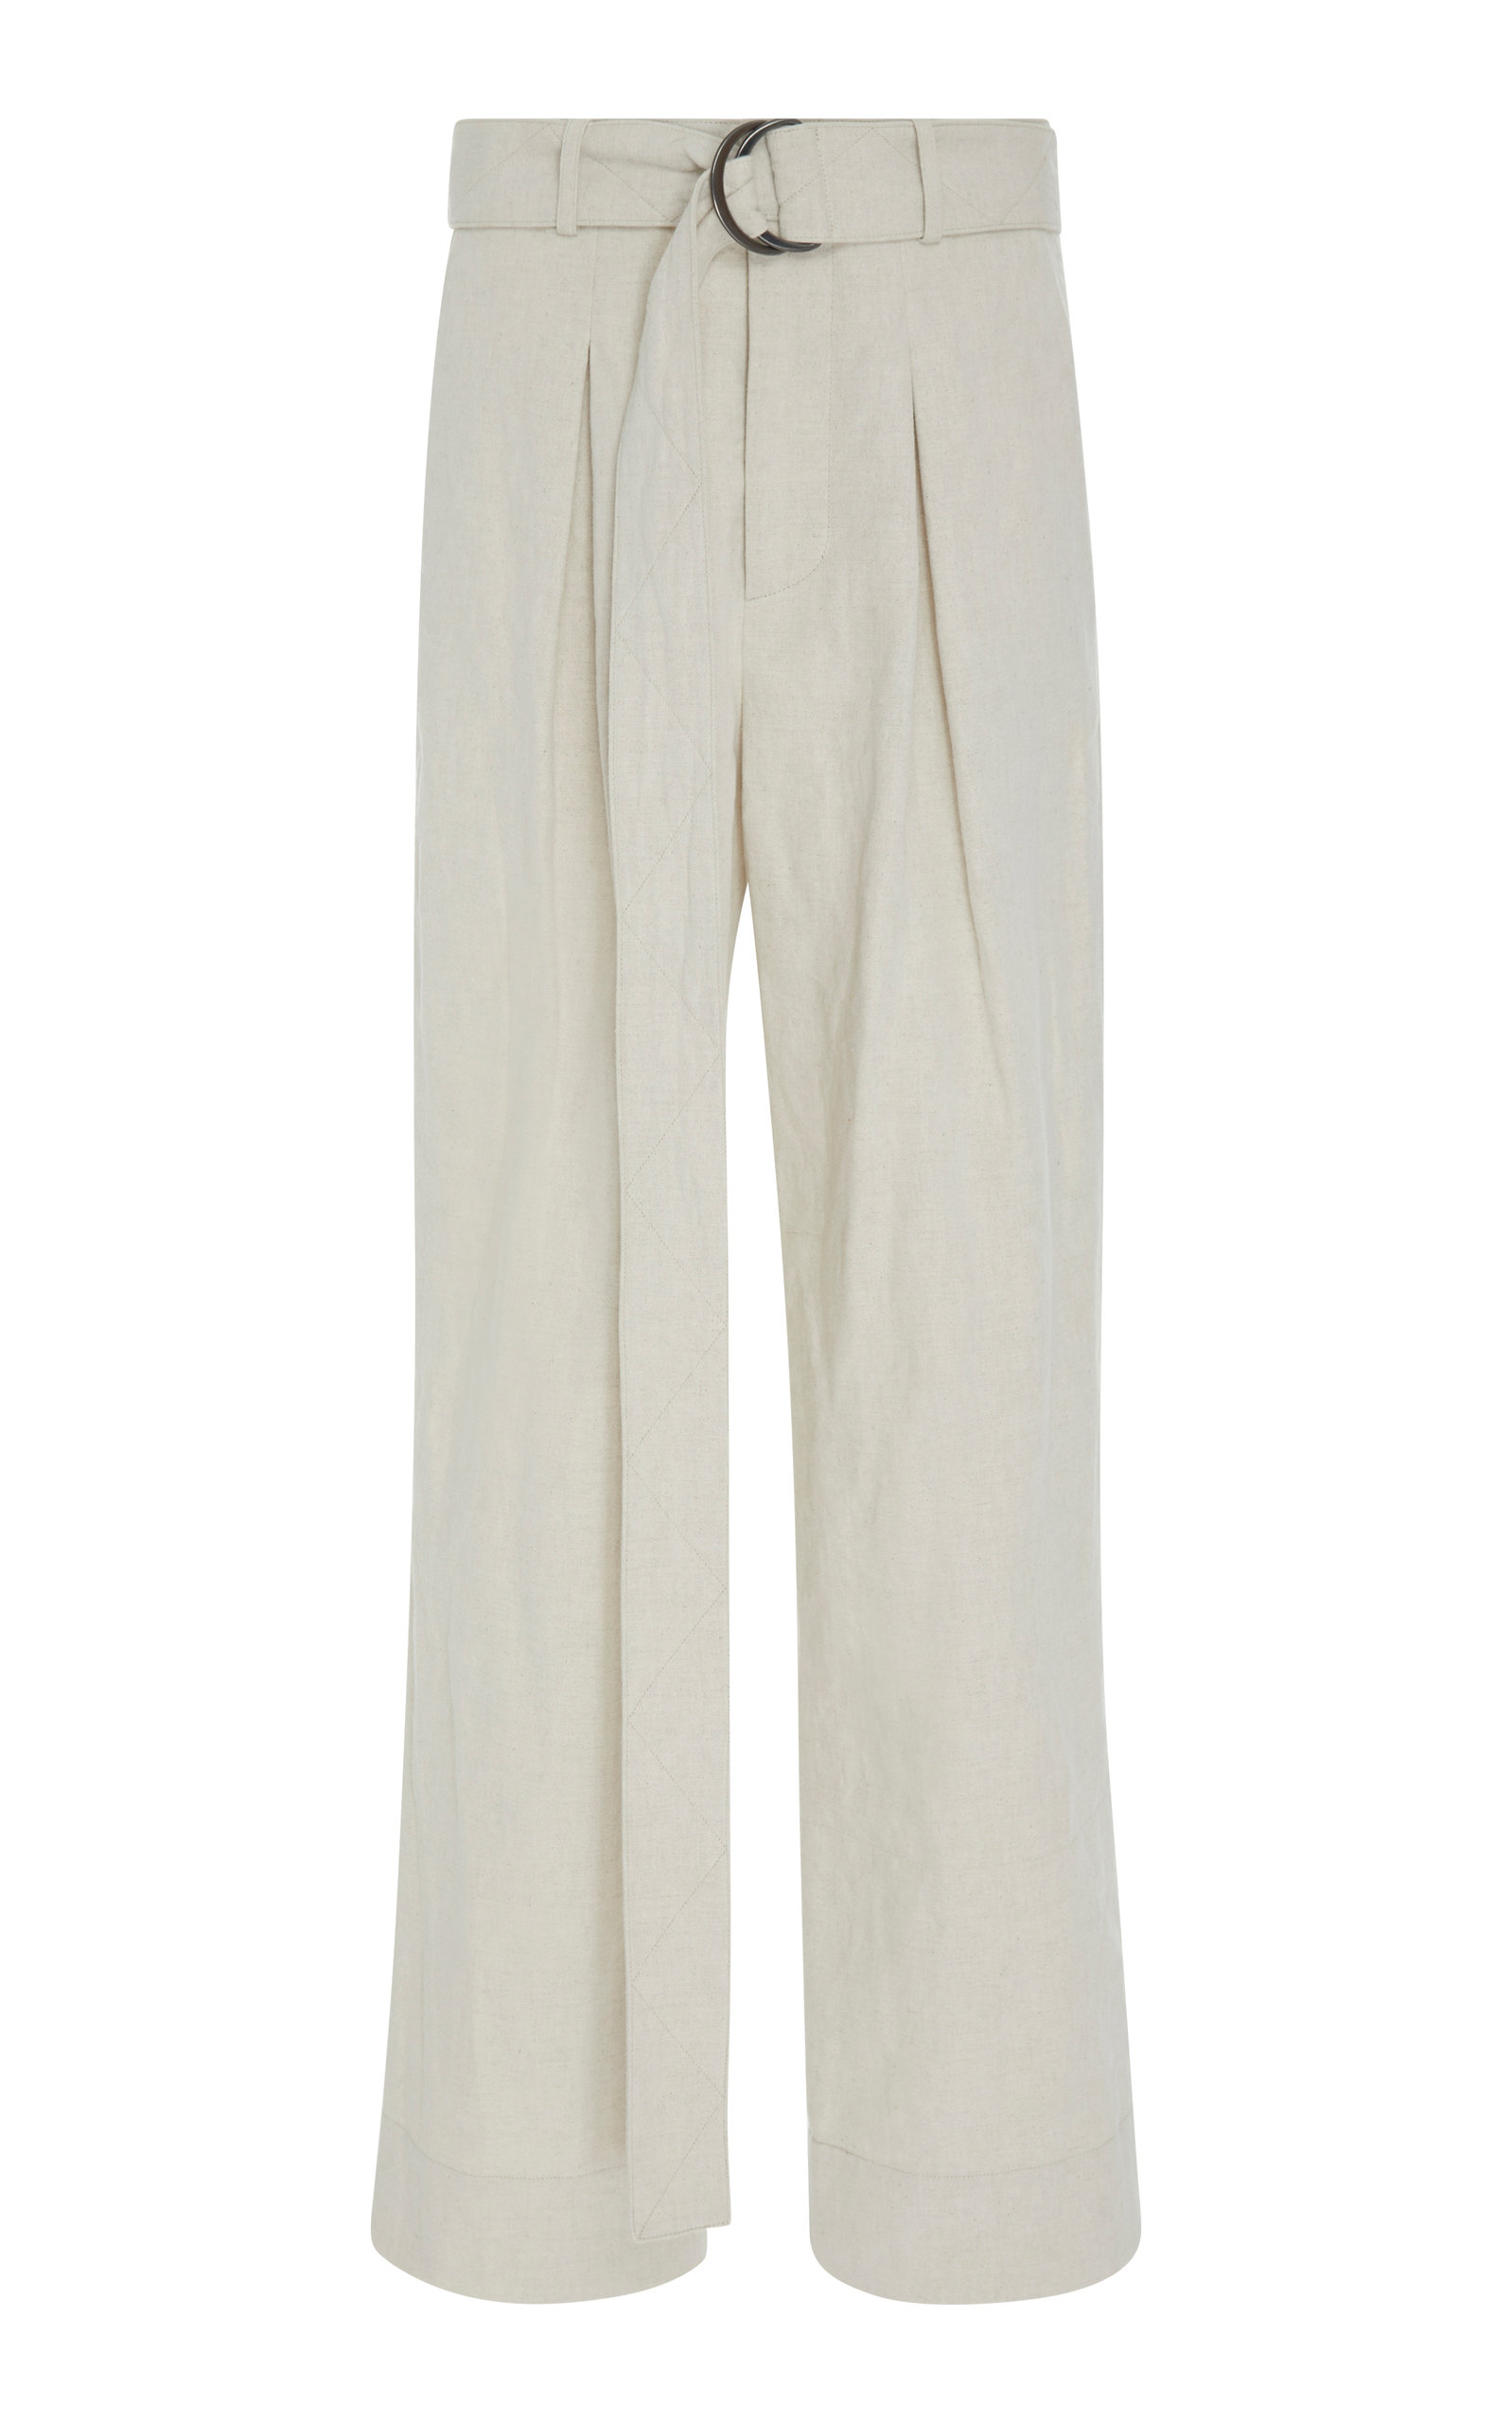 ARIAS BELTED WIDE-LEG PANT